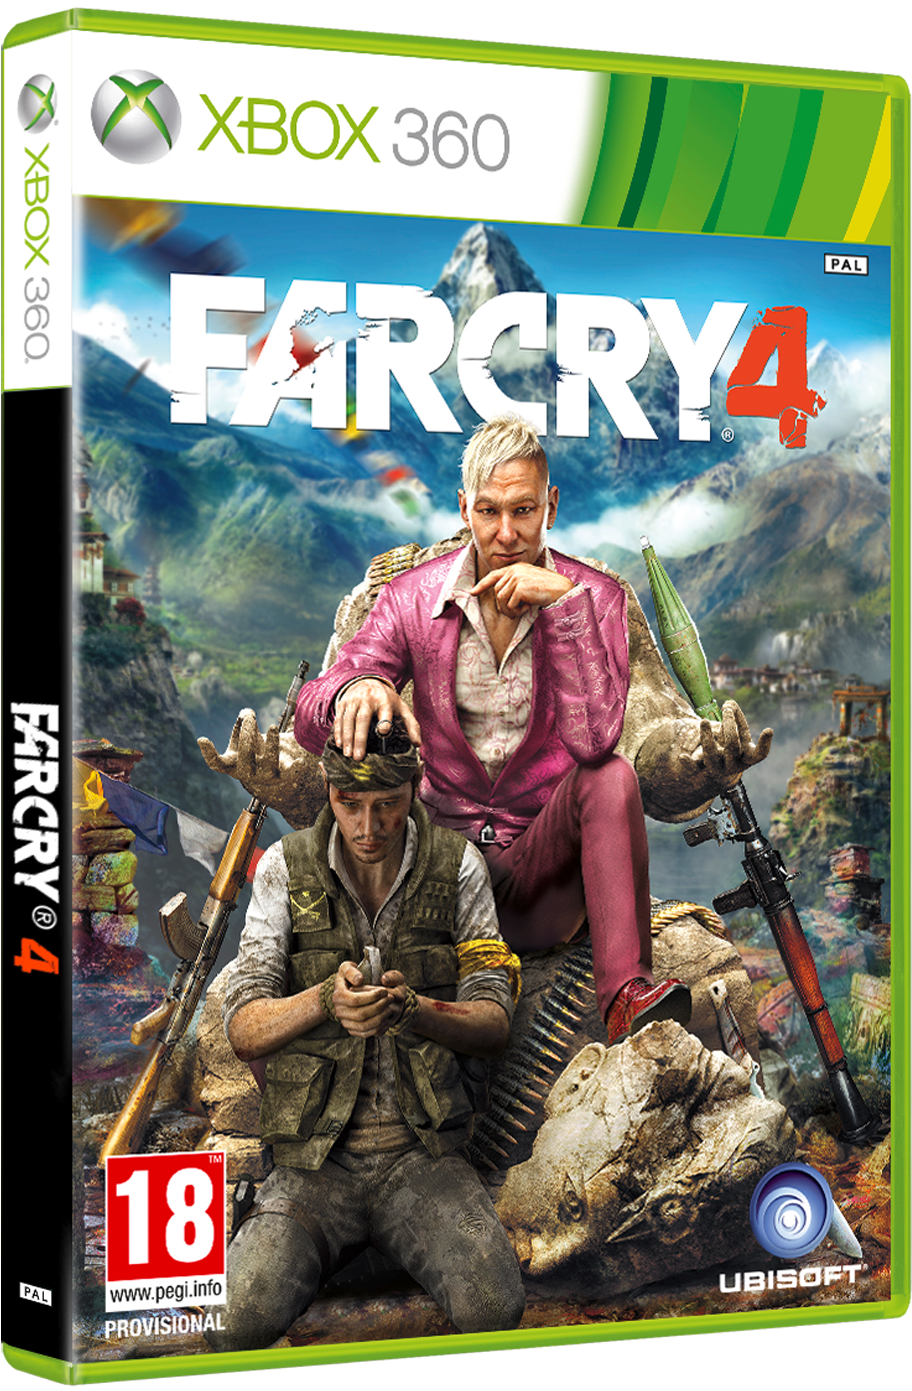 Far Cry 4 Announced Far Cry 4 Classics Xbox 360 Full Size Png Download Seekpng